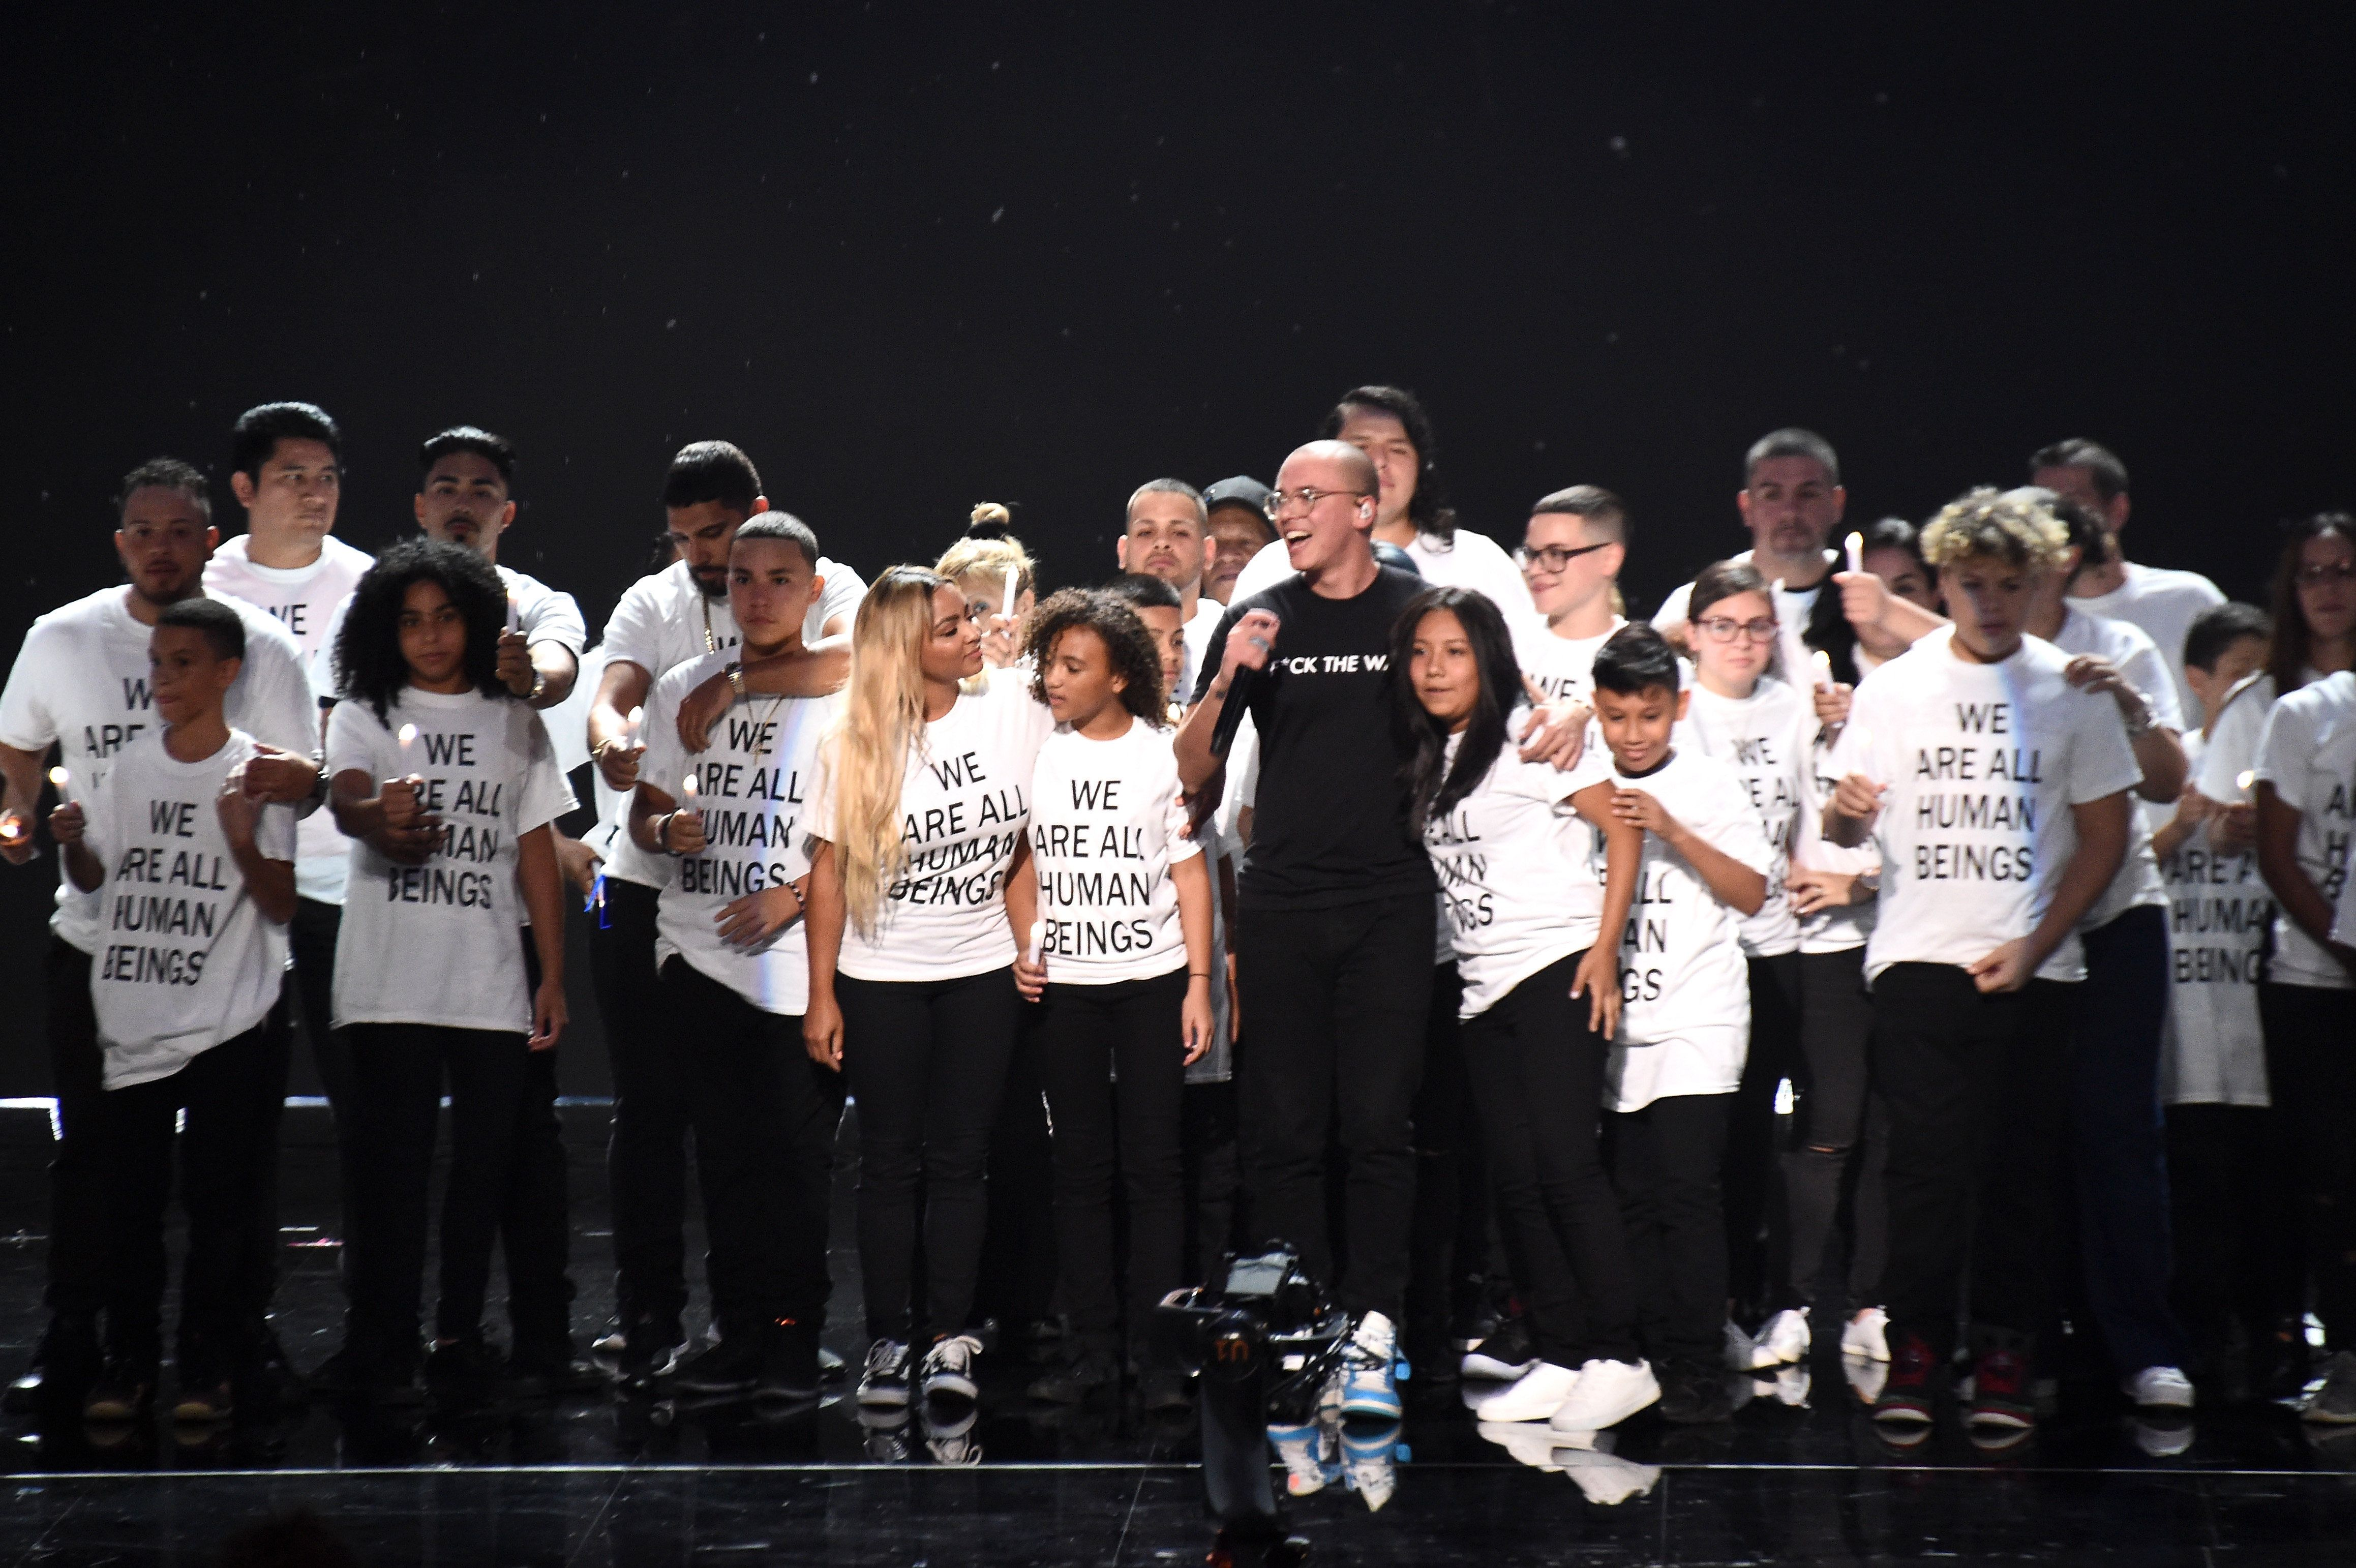 NEW YORK, NY - AUGUST 20:  Logic performs onstage during the 2018 MTV Video Music Awards at Radio City Music Hall on August 20, 2018 in New York City.  (Photo by Michael Loccisano/Getty Images for MTV)